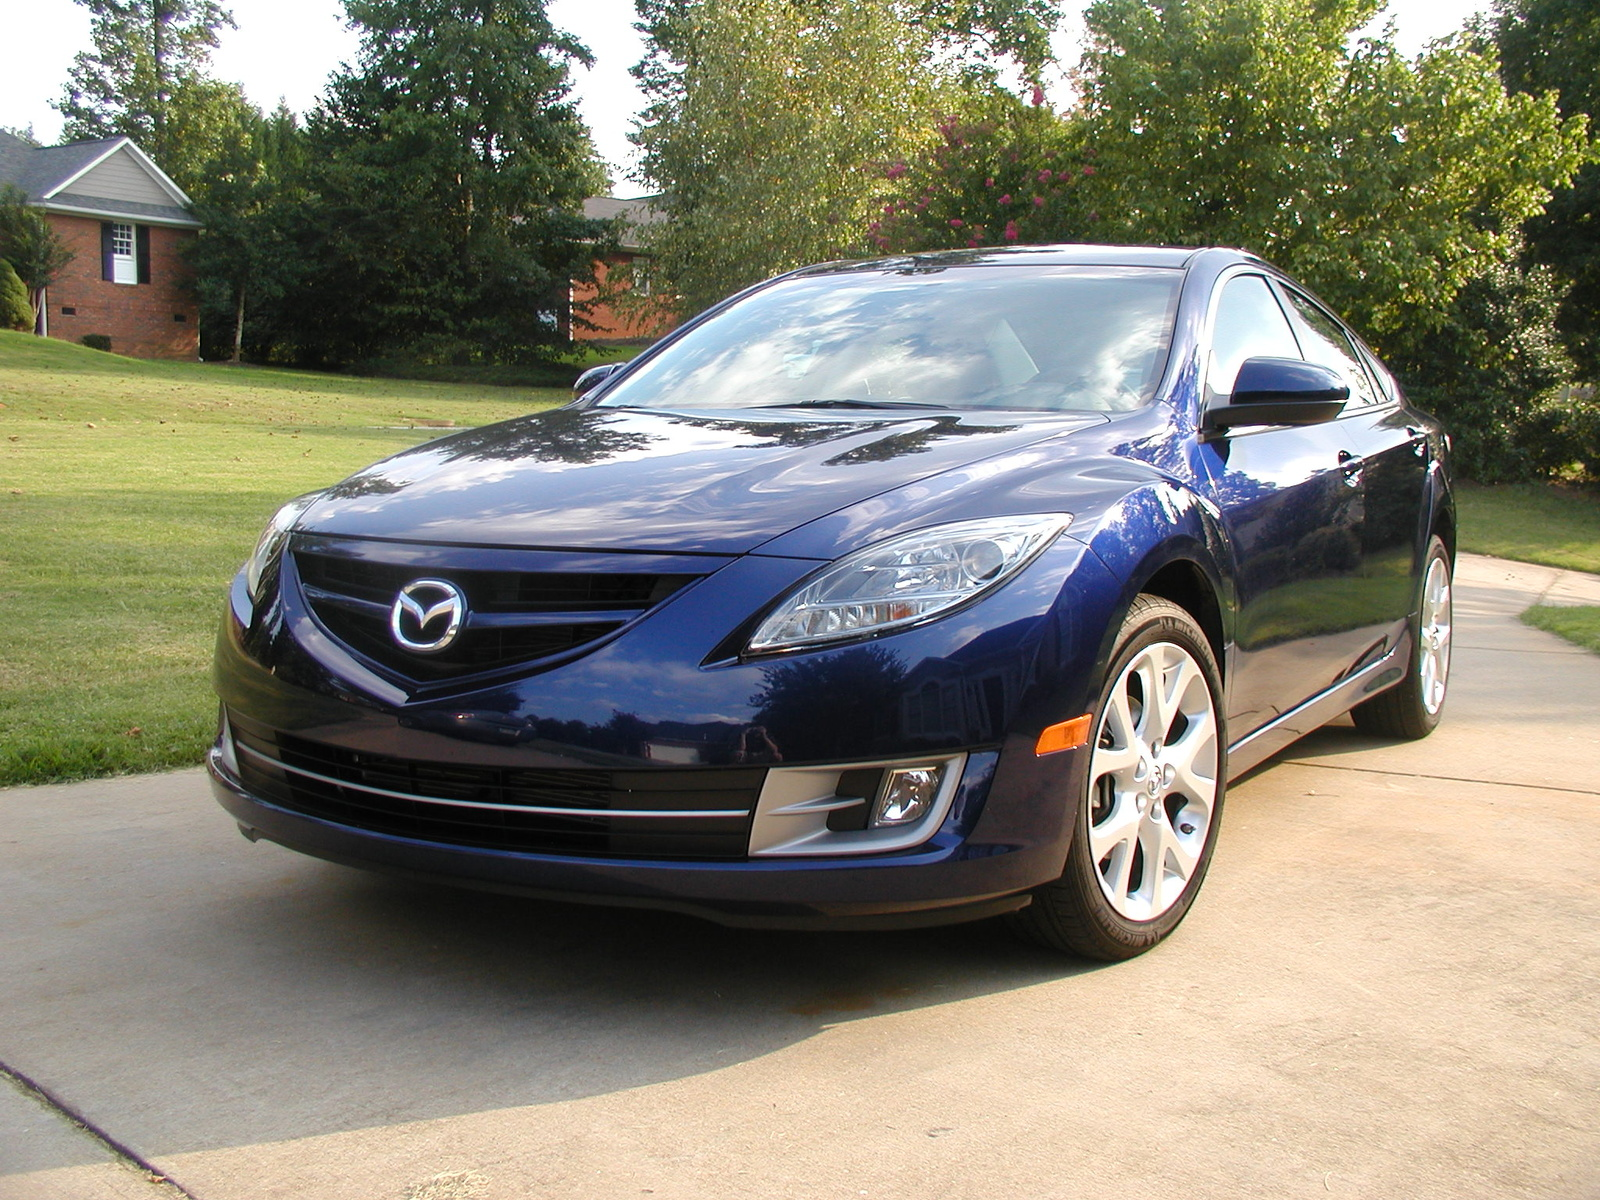 2009 mazda mazda6 pictures cargurus. Black Bedroom Furniture Sets. Home Design Ideas